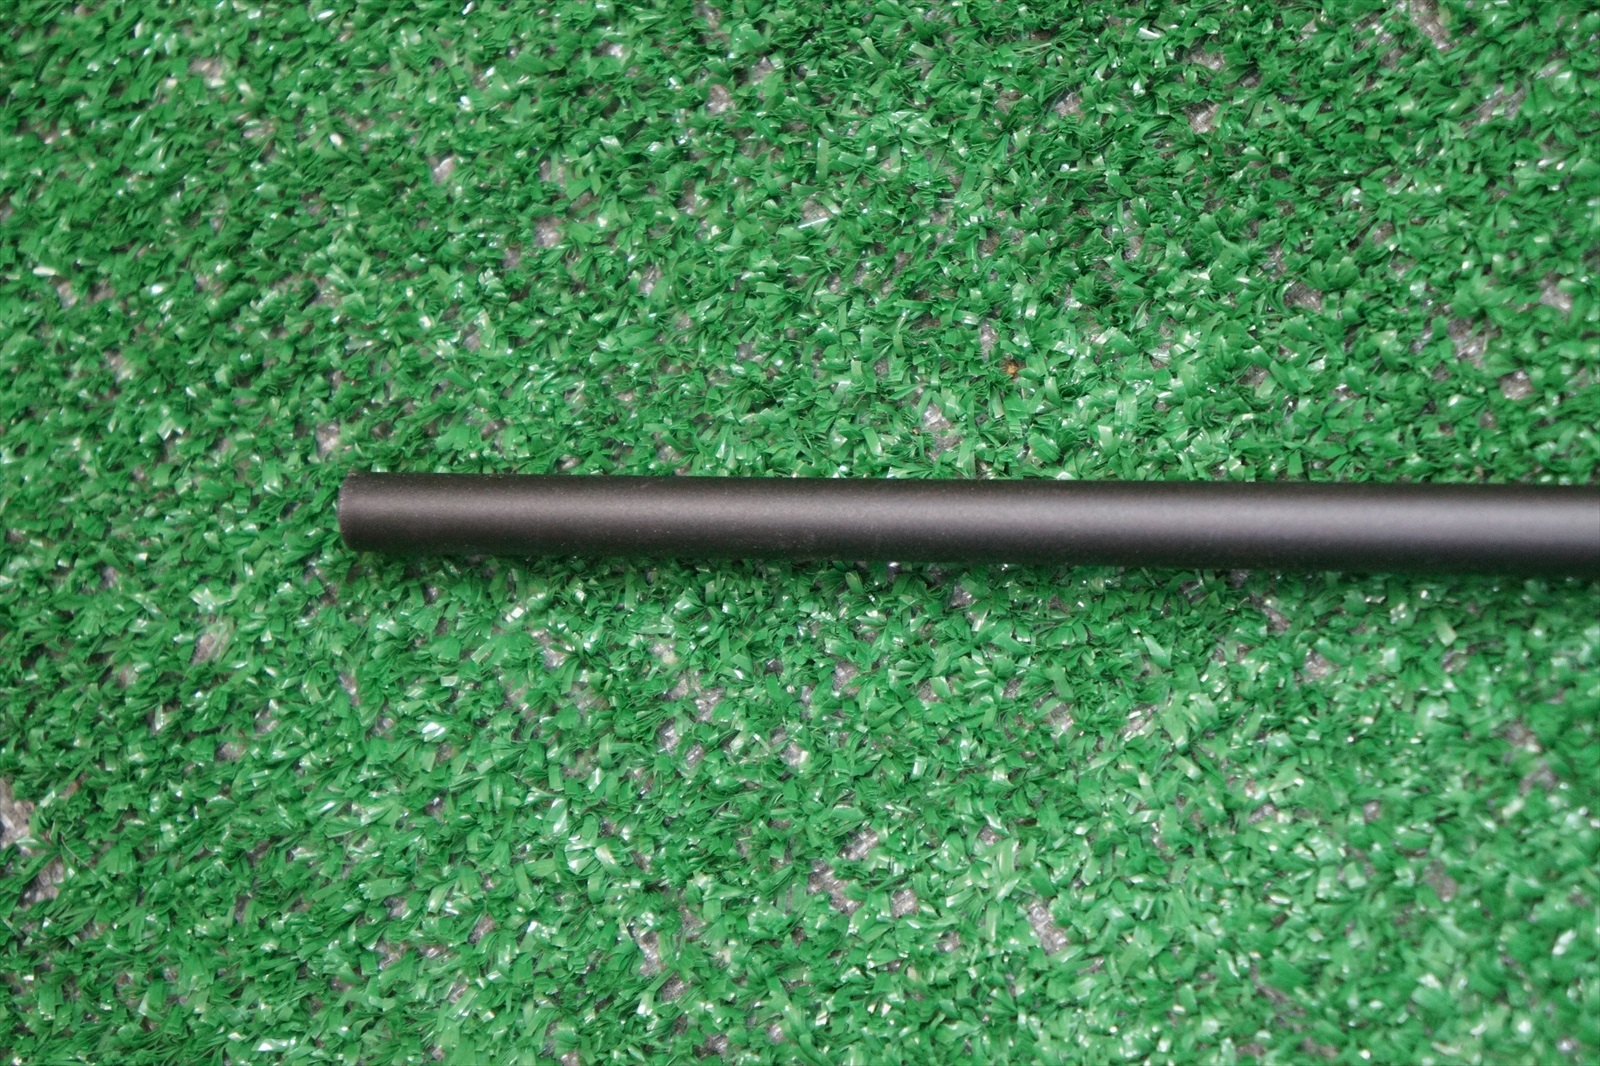 new fujikura fuel 70 stiff flex driver wood golf shaft 46 335 157993 ebay. Black Bedroom Furniture Sets. Home Design Ideas